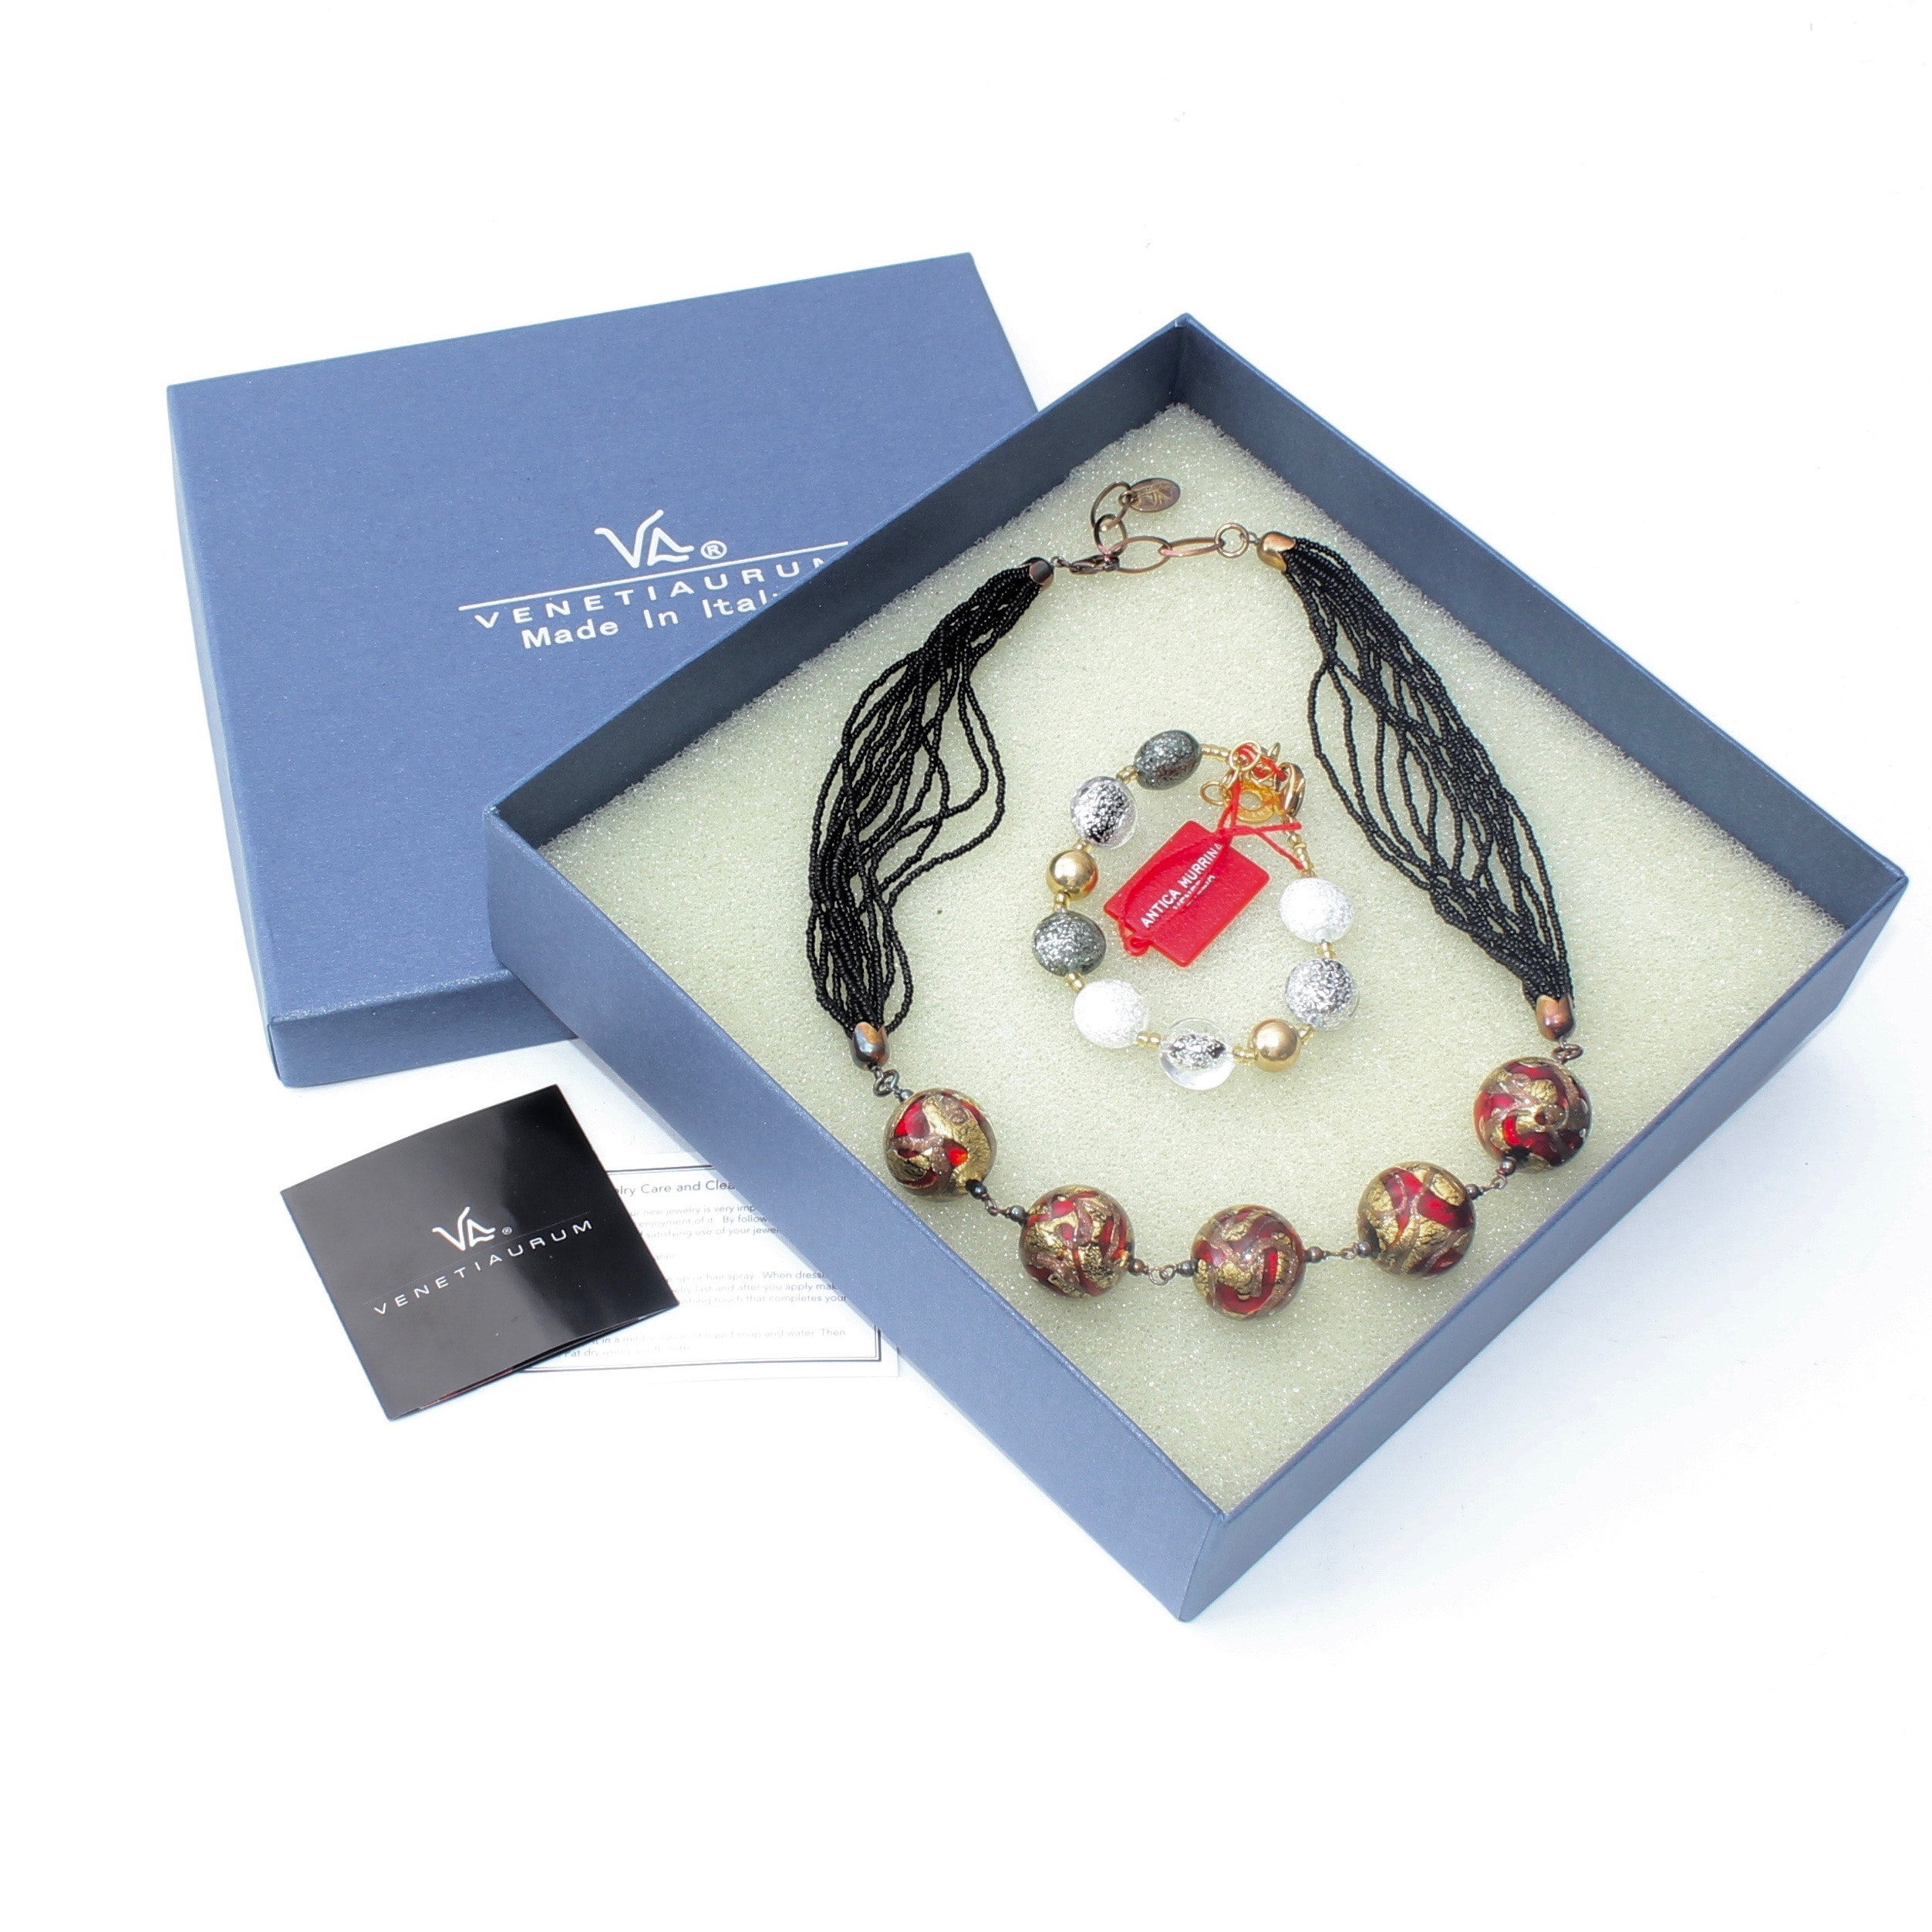 Murano Glass Necklace and Bracelet